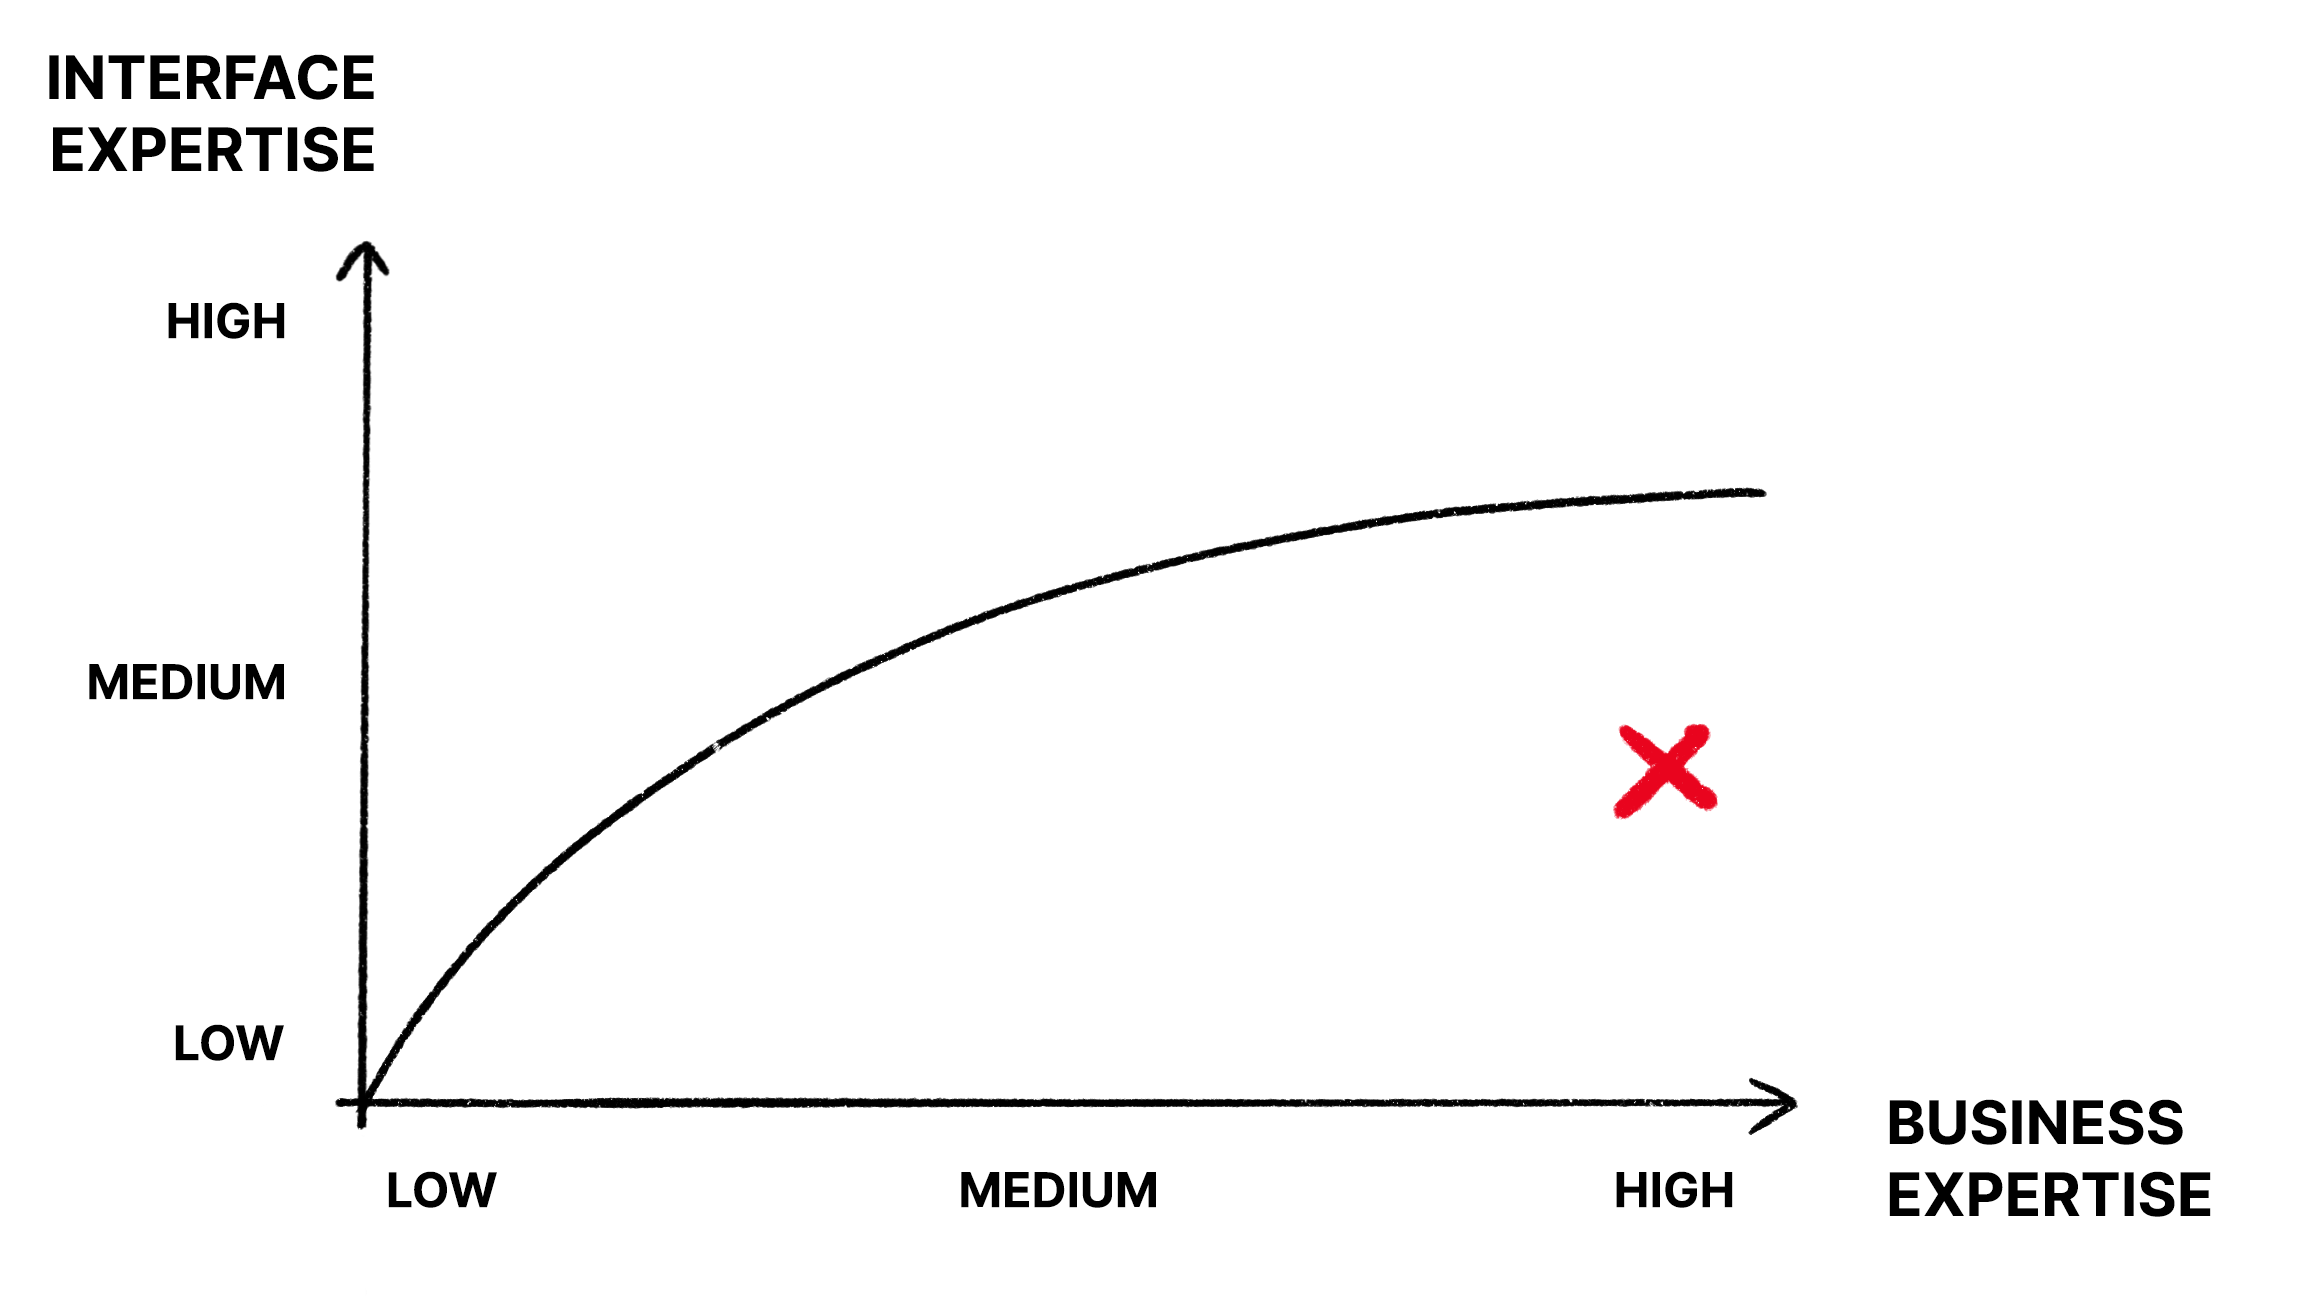 A graph with a mark on medium interface expertise and high business expertise.